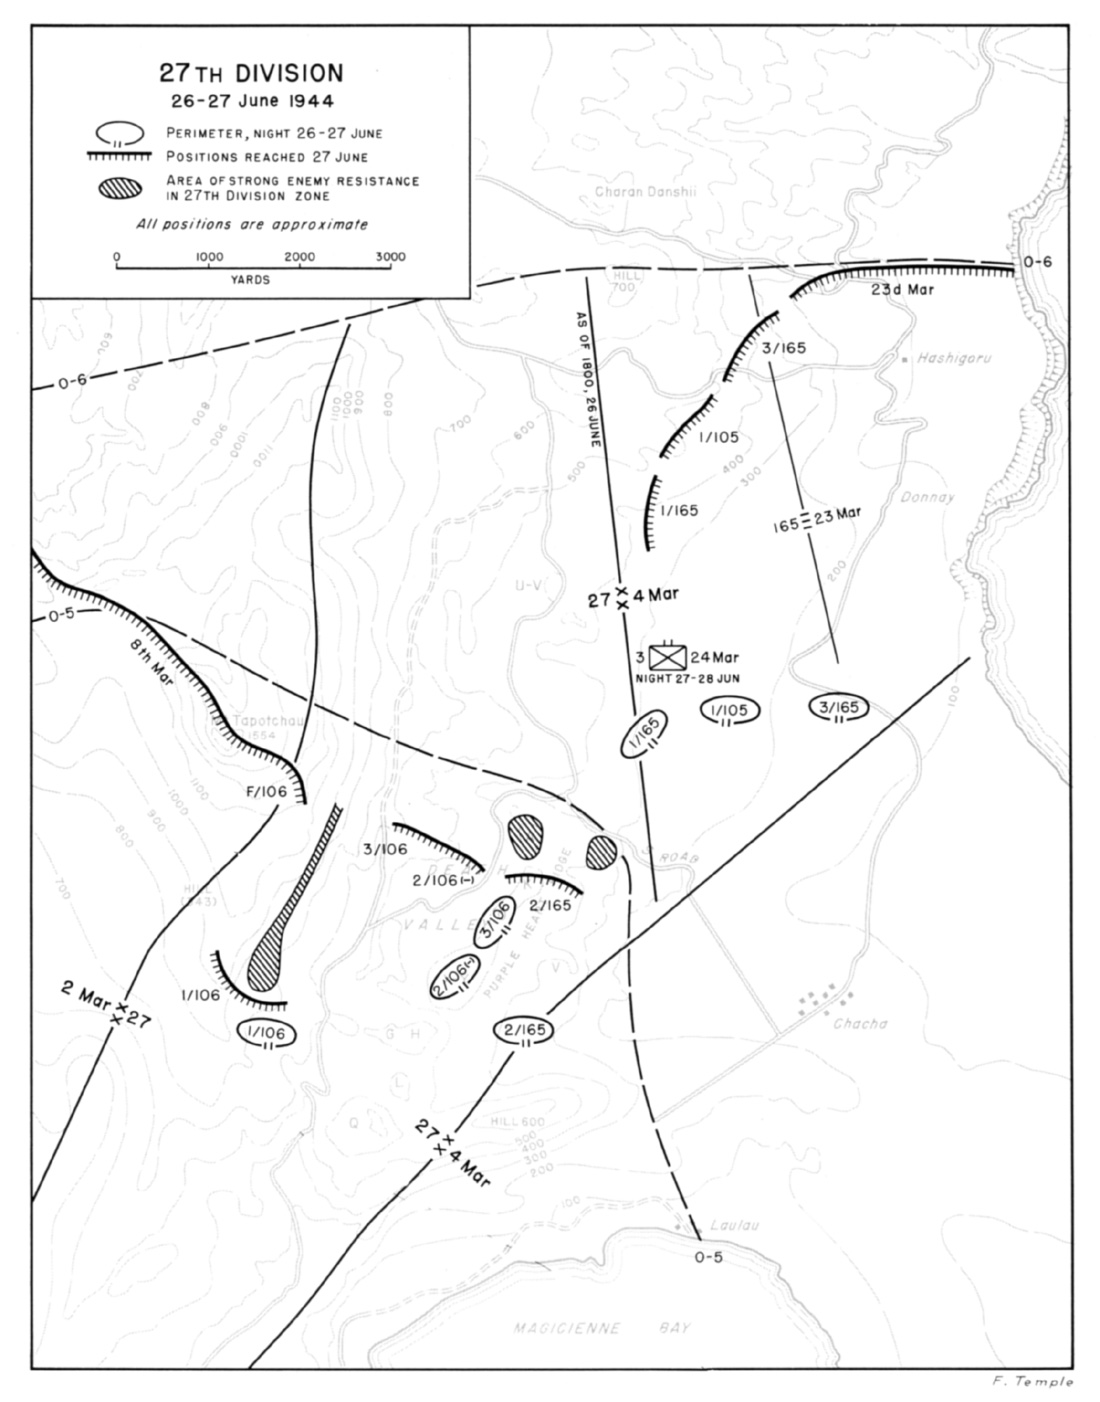 27th division 26 27 june 1944